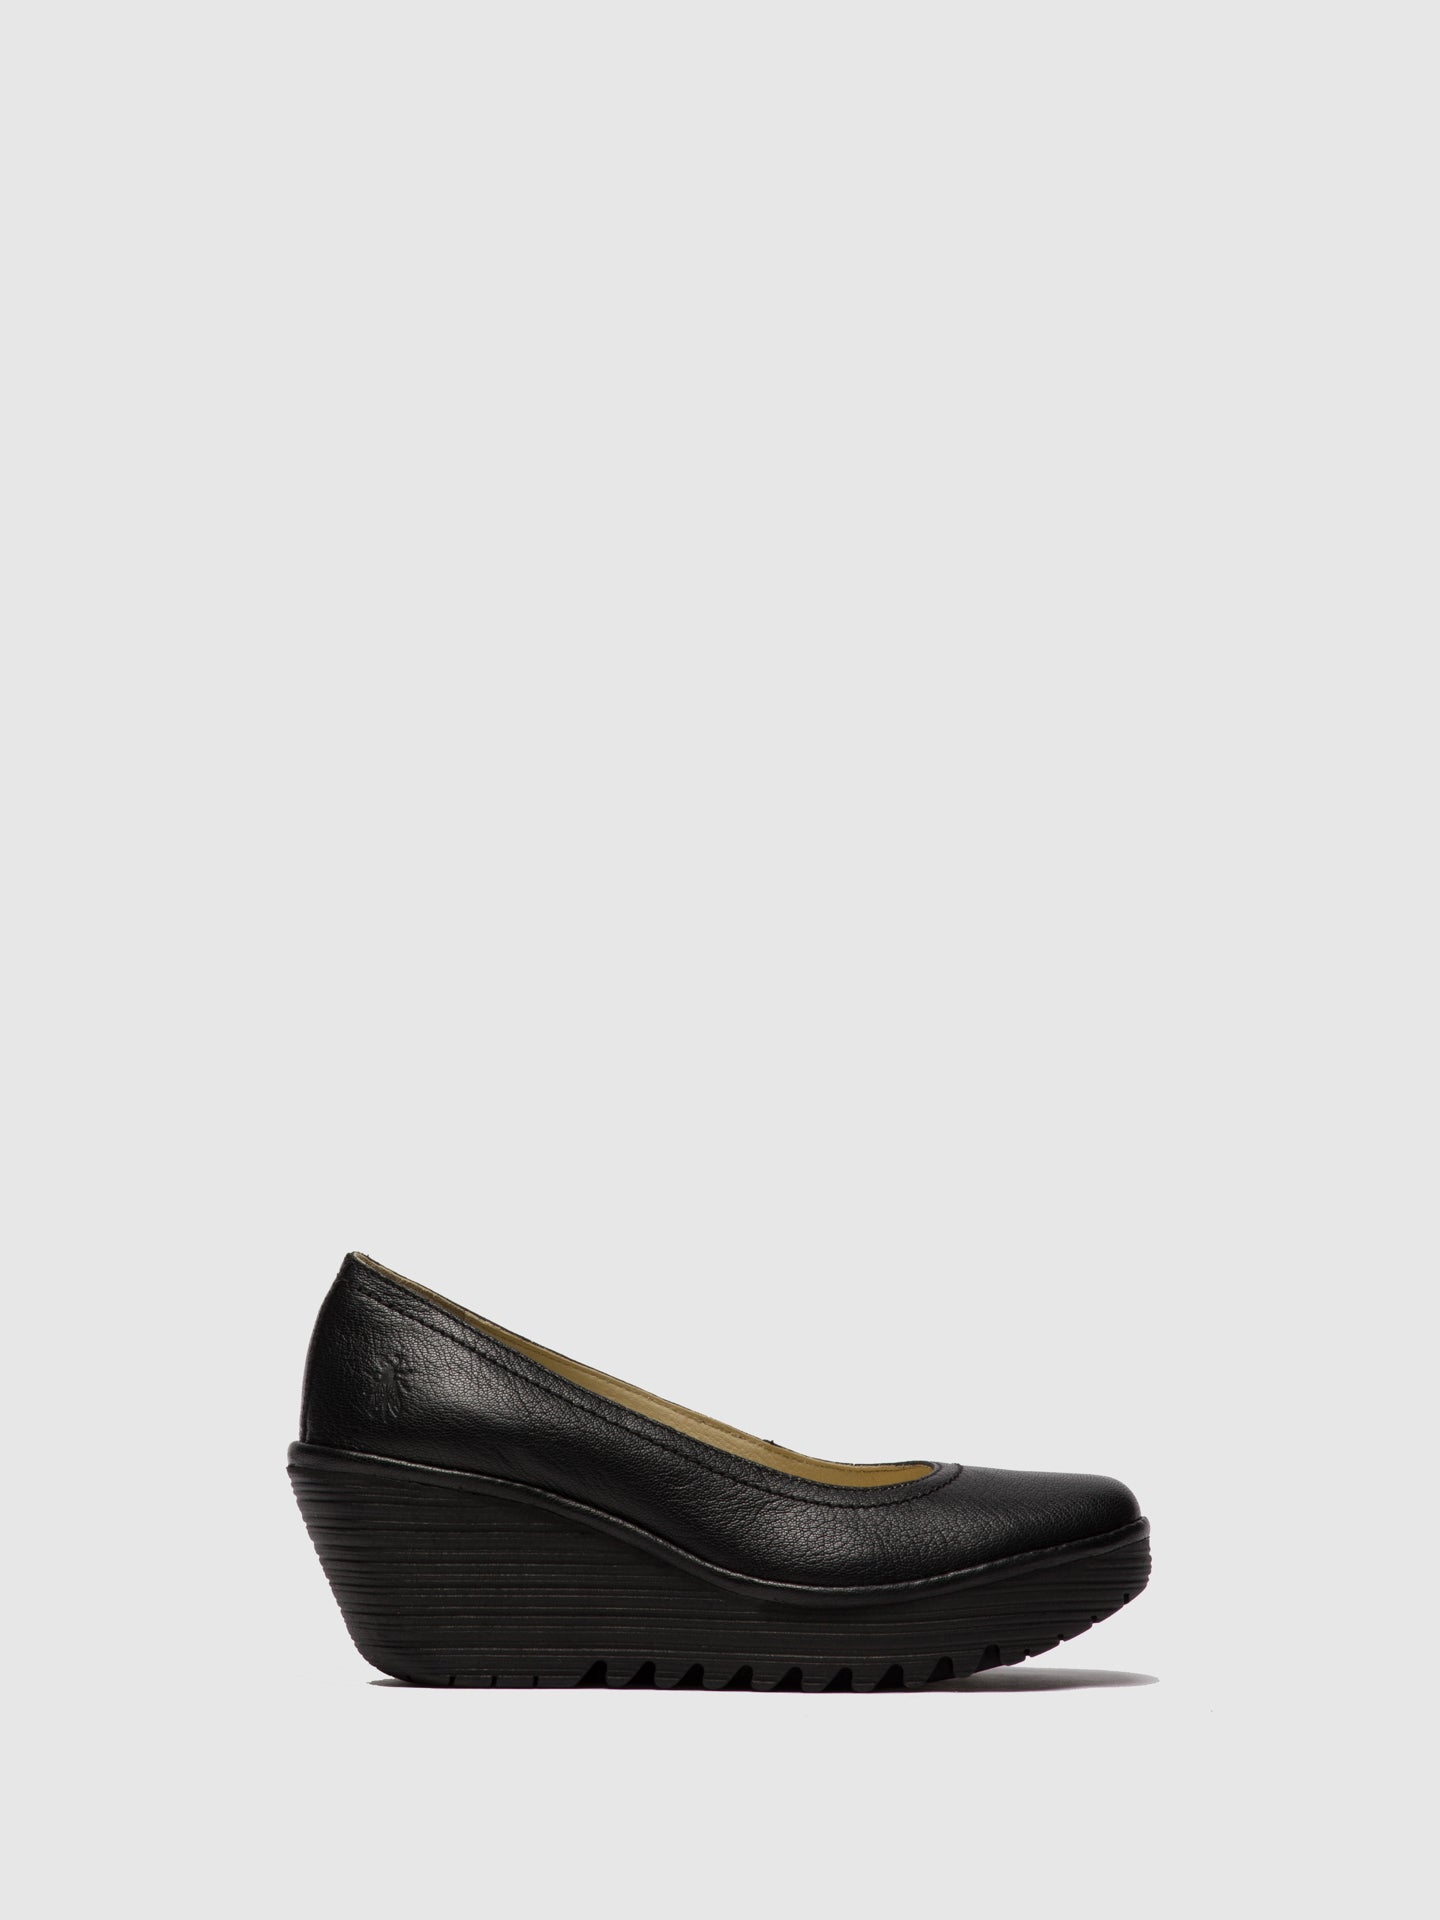 Fly London Black Leather Wedge Shoes